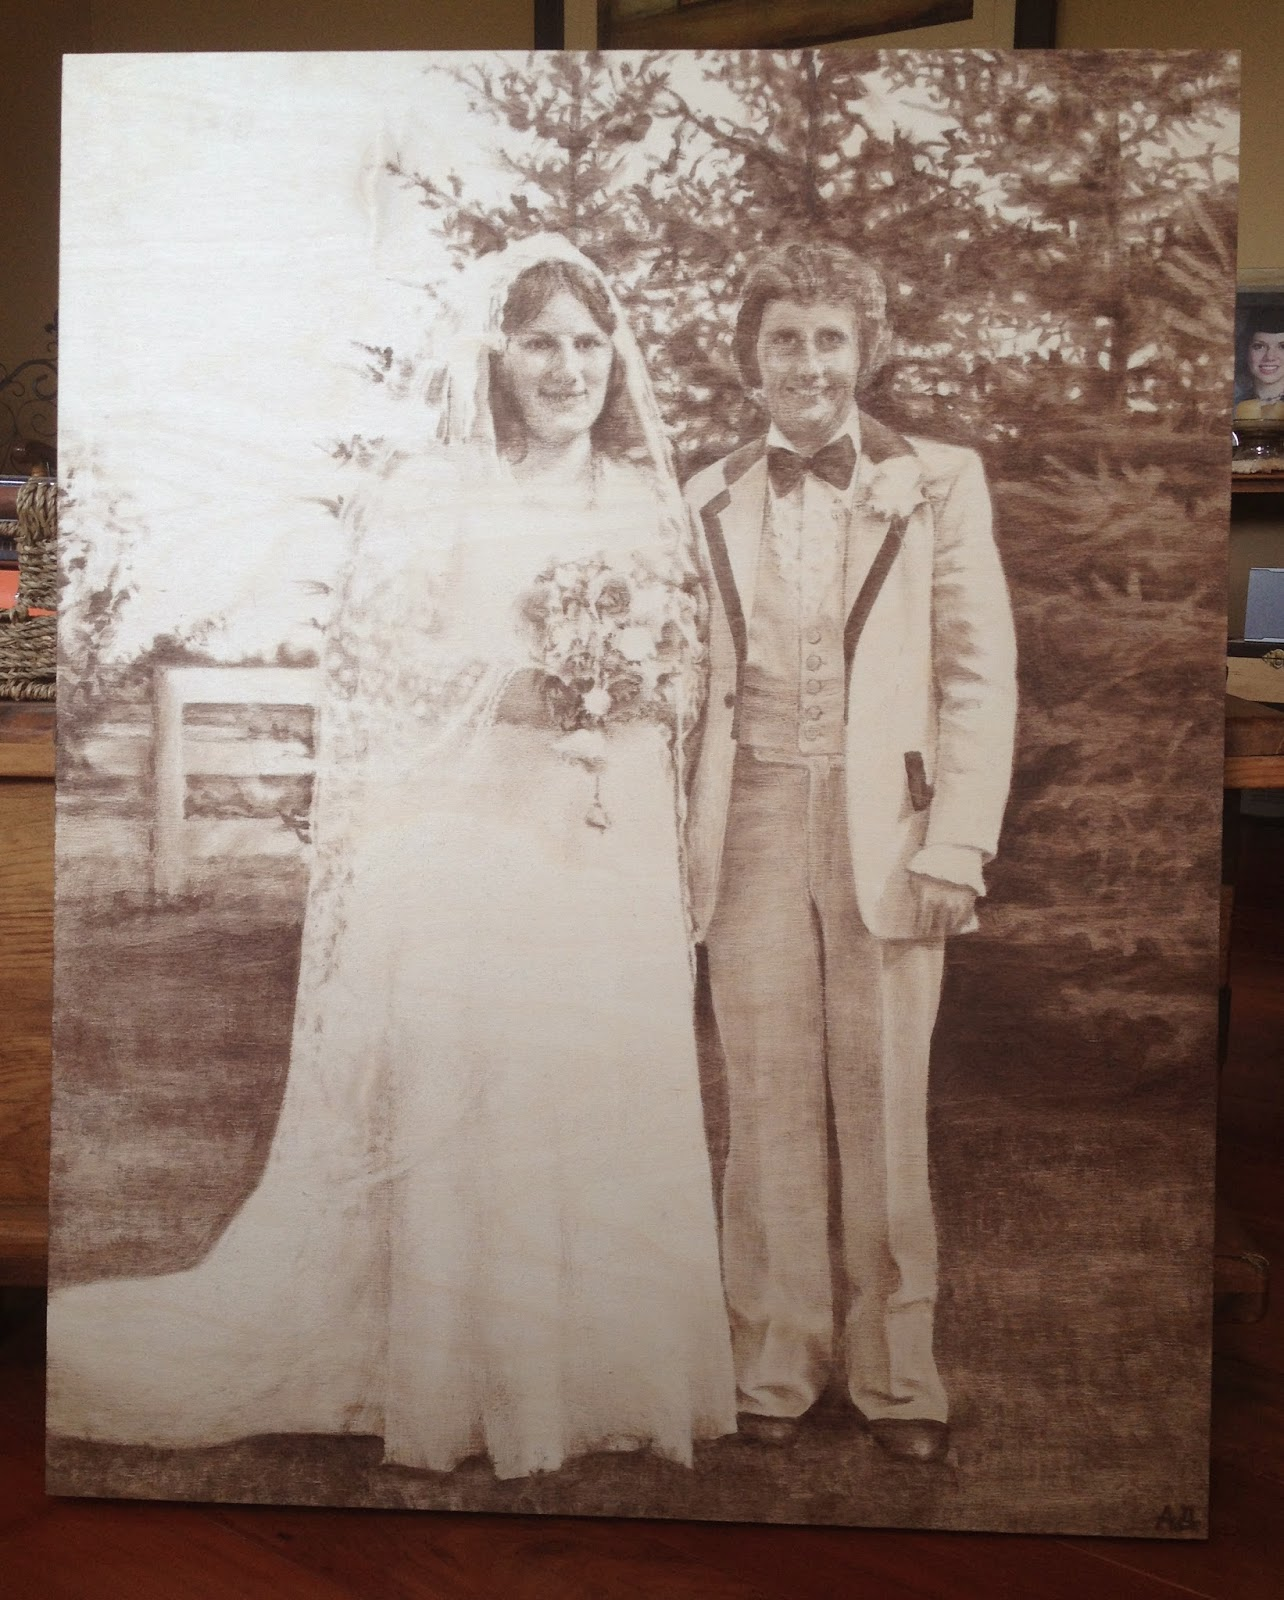 Painting, Wood stain, old photo, wedding, commission